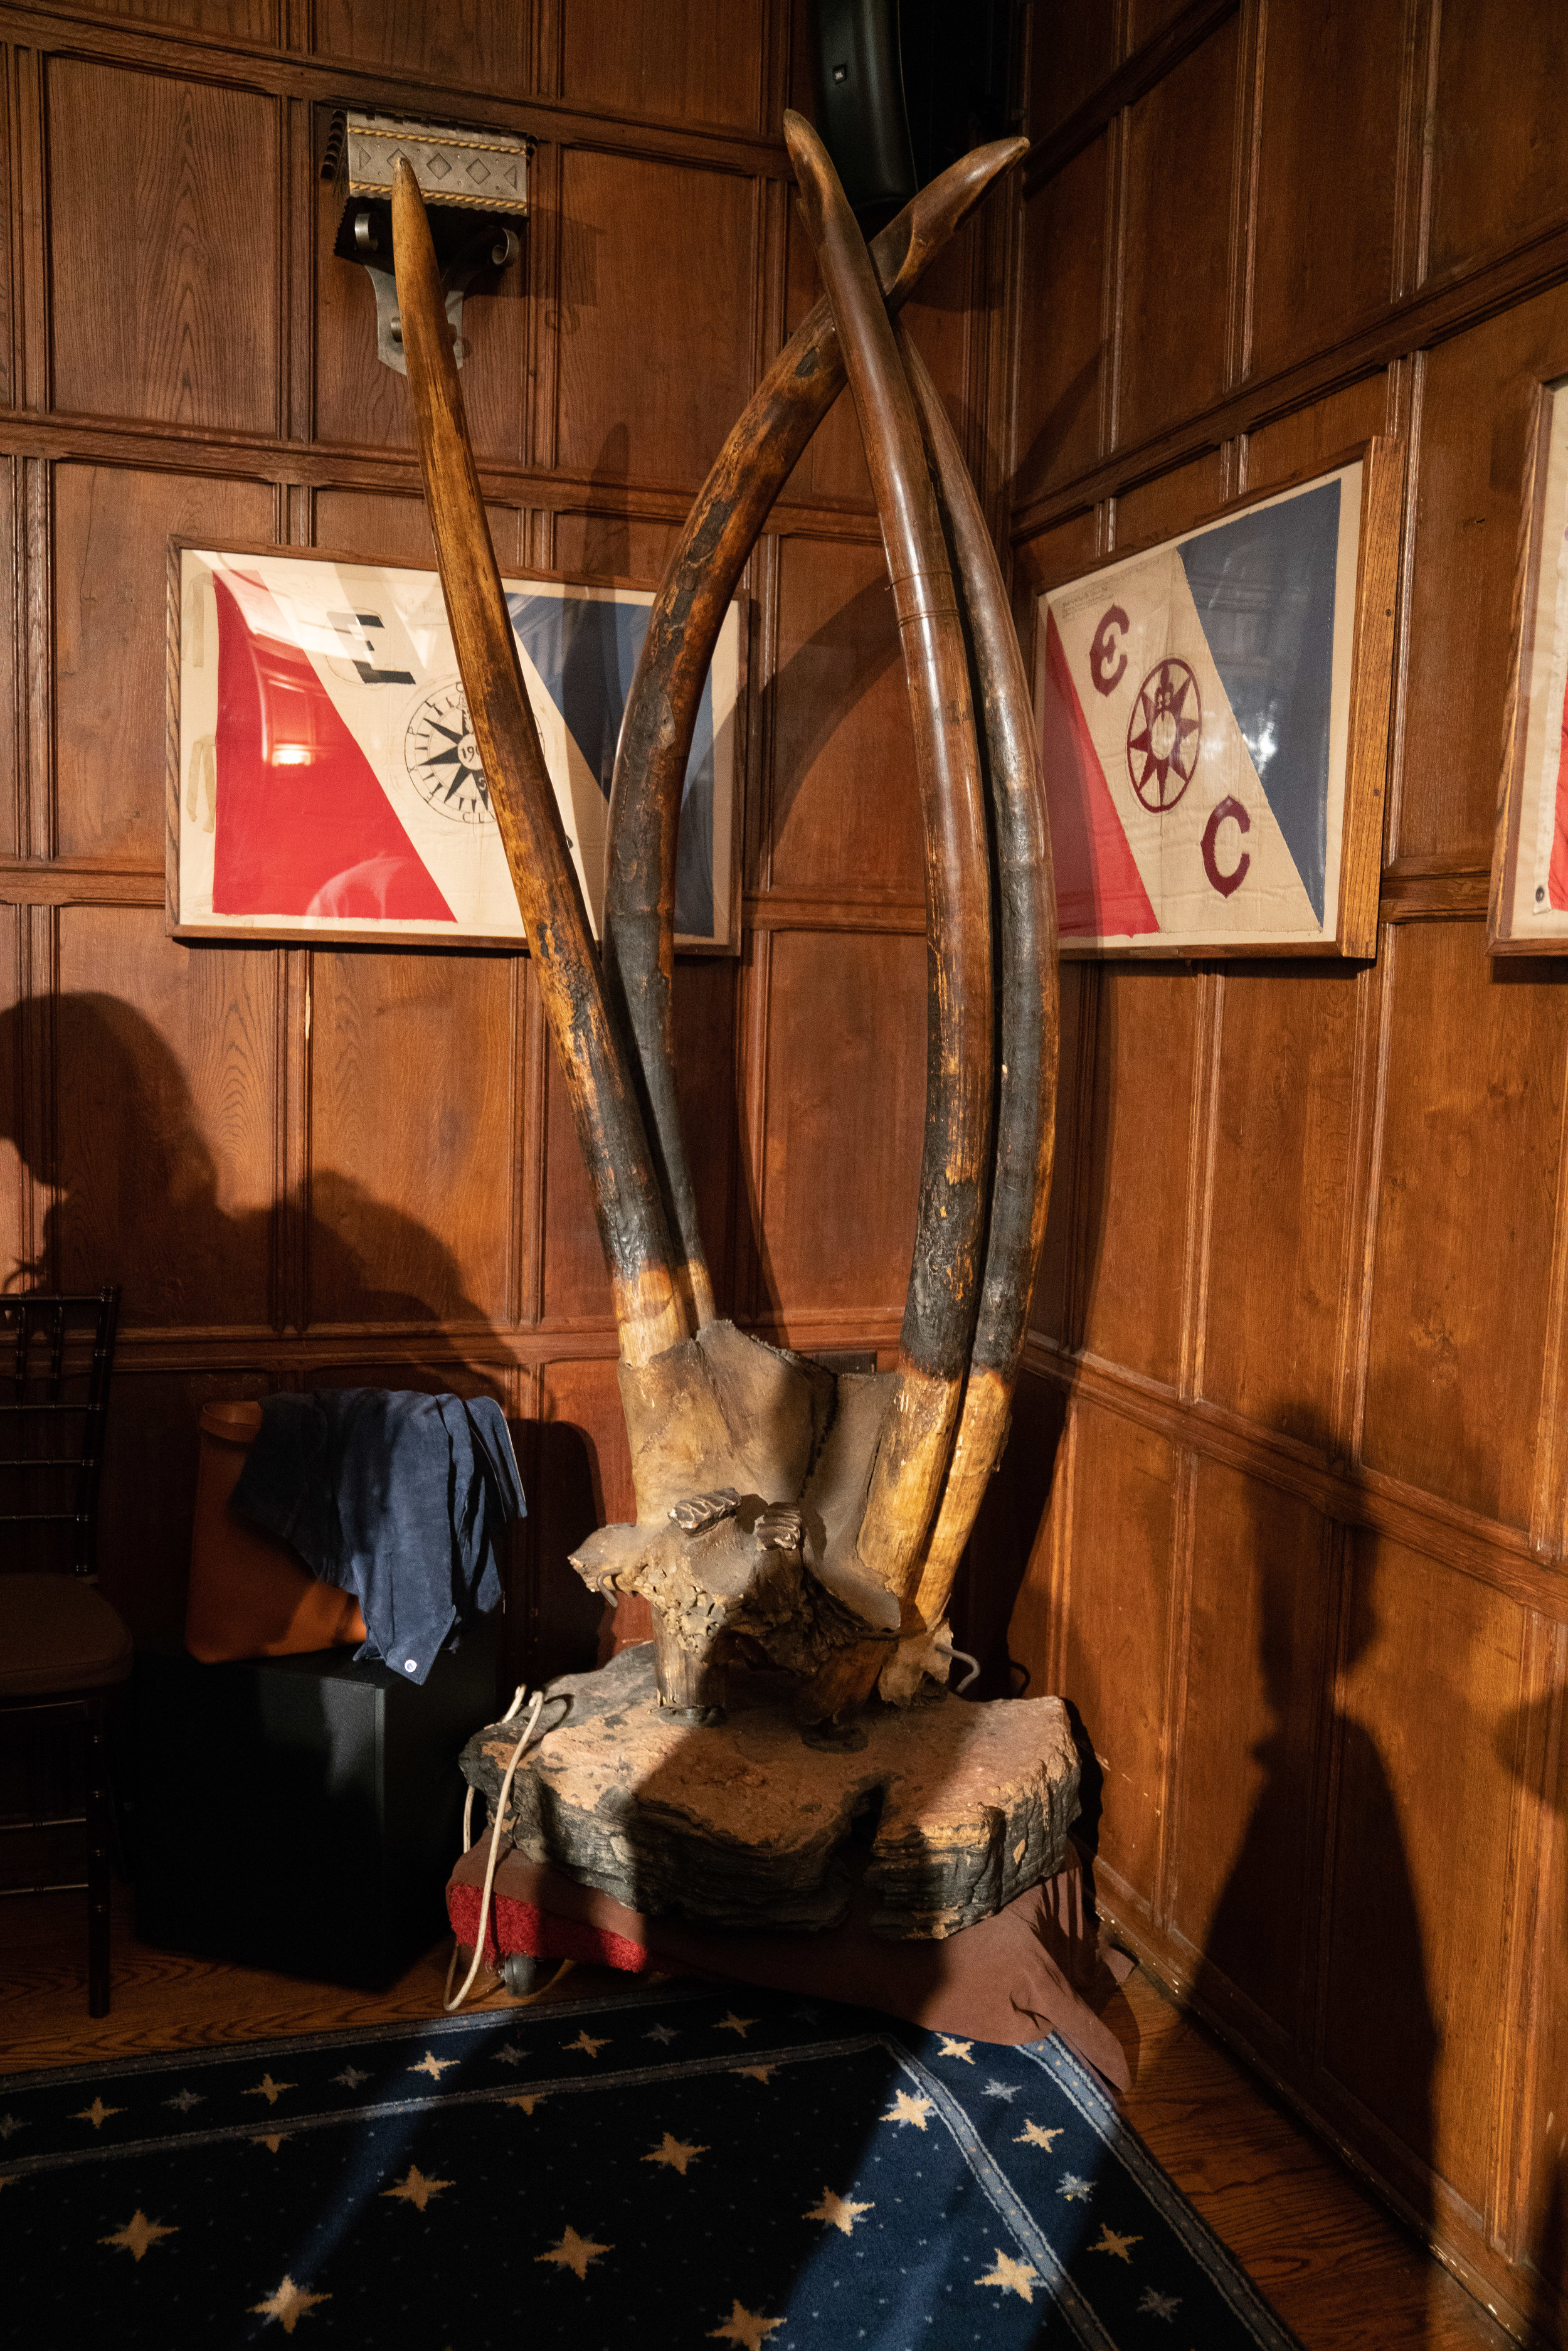 The tusks of a rare four-tusked elephant in the Clark Room.